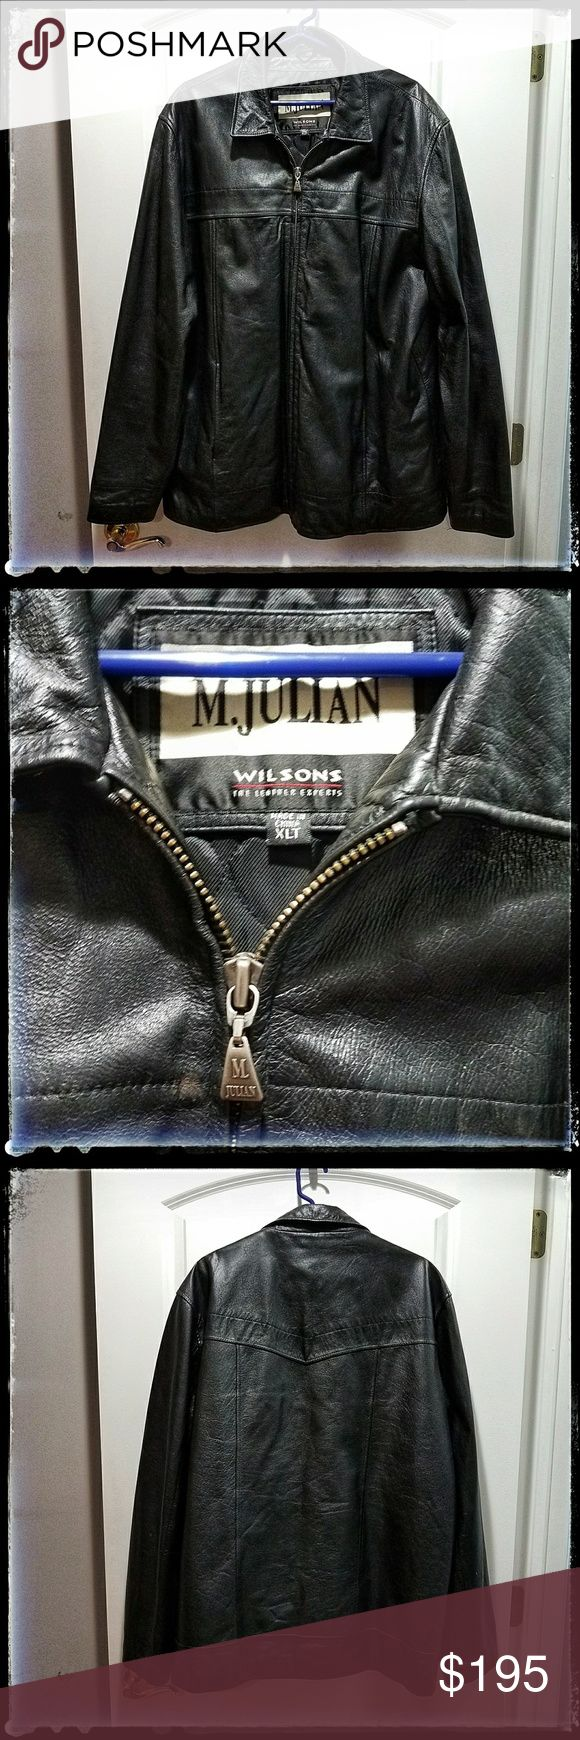 M. Julian Wilsons Big&Tall Black Leather Jacket EUC: Genuine leather Wilsons- M. Julian black formal type labeled for men with a zip front, straight bottom, two front pockets, and two inside secure pockets (cell phone compartment and a zippered slide pocket). In fantastic condition with no holes or tears. Size: XLT Please note: there is a small mark by the left elbow area. See pictures. Wilsons Leather Jackets & Coats